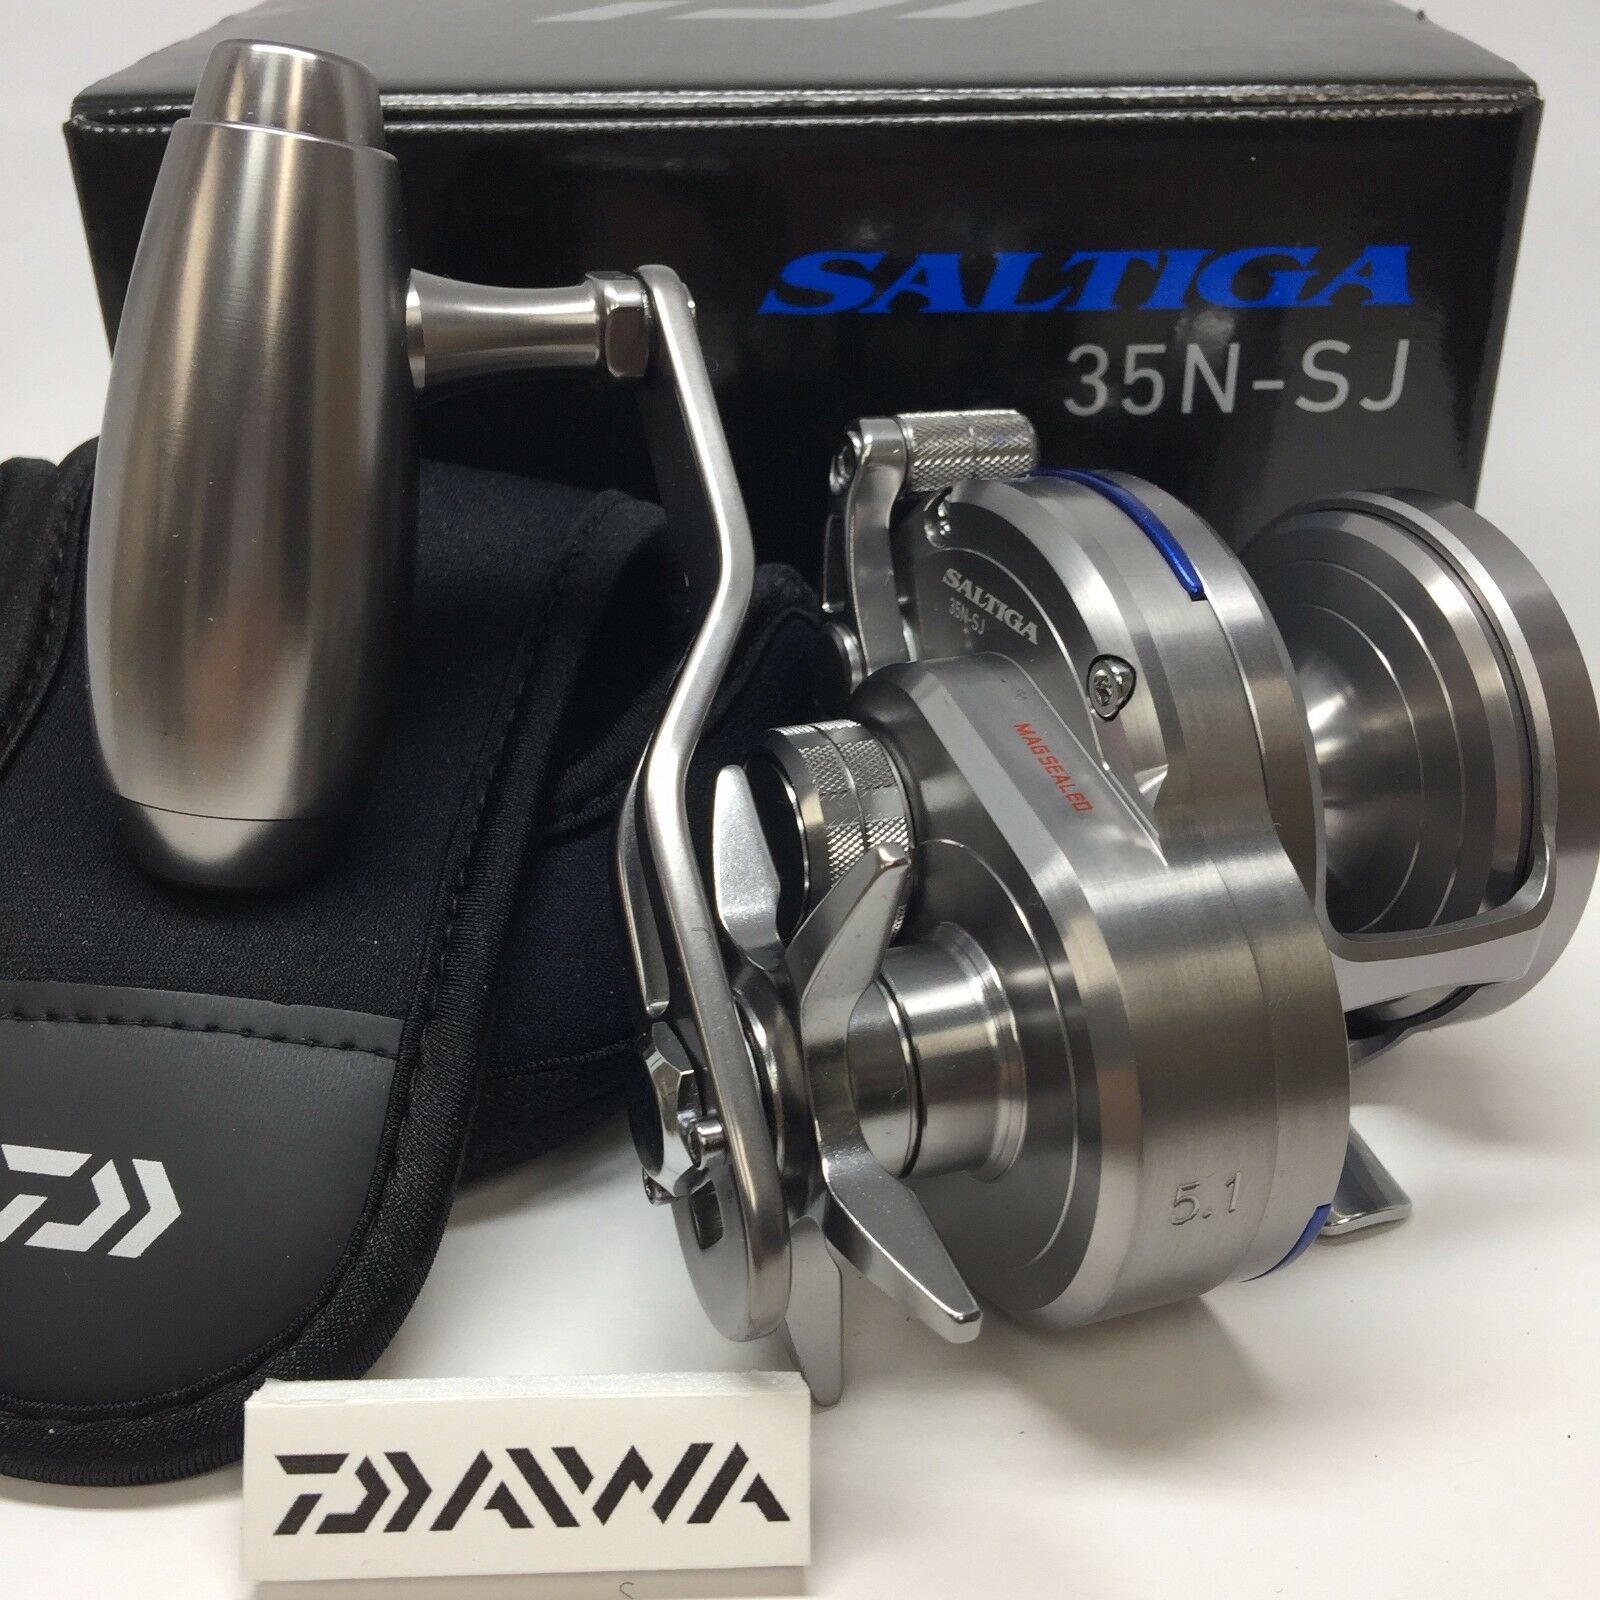 DAIWA 16 SALTIGA 35N-SJ   - Free Shipping from Japan